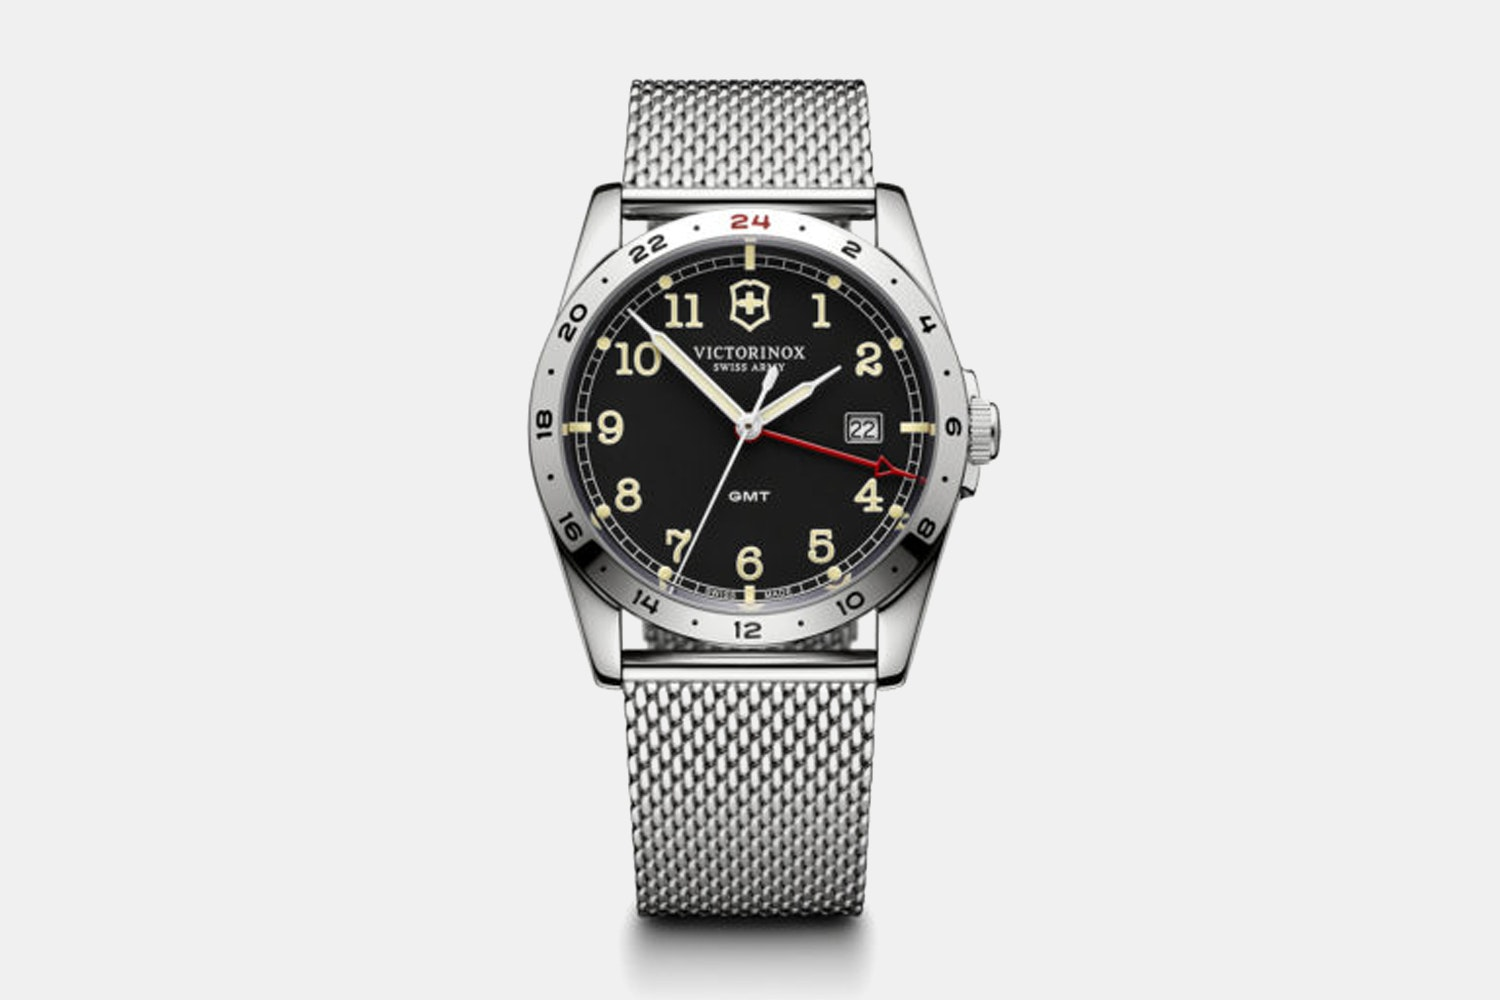 Victorinox Infantry GMT Quartz Watch